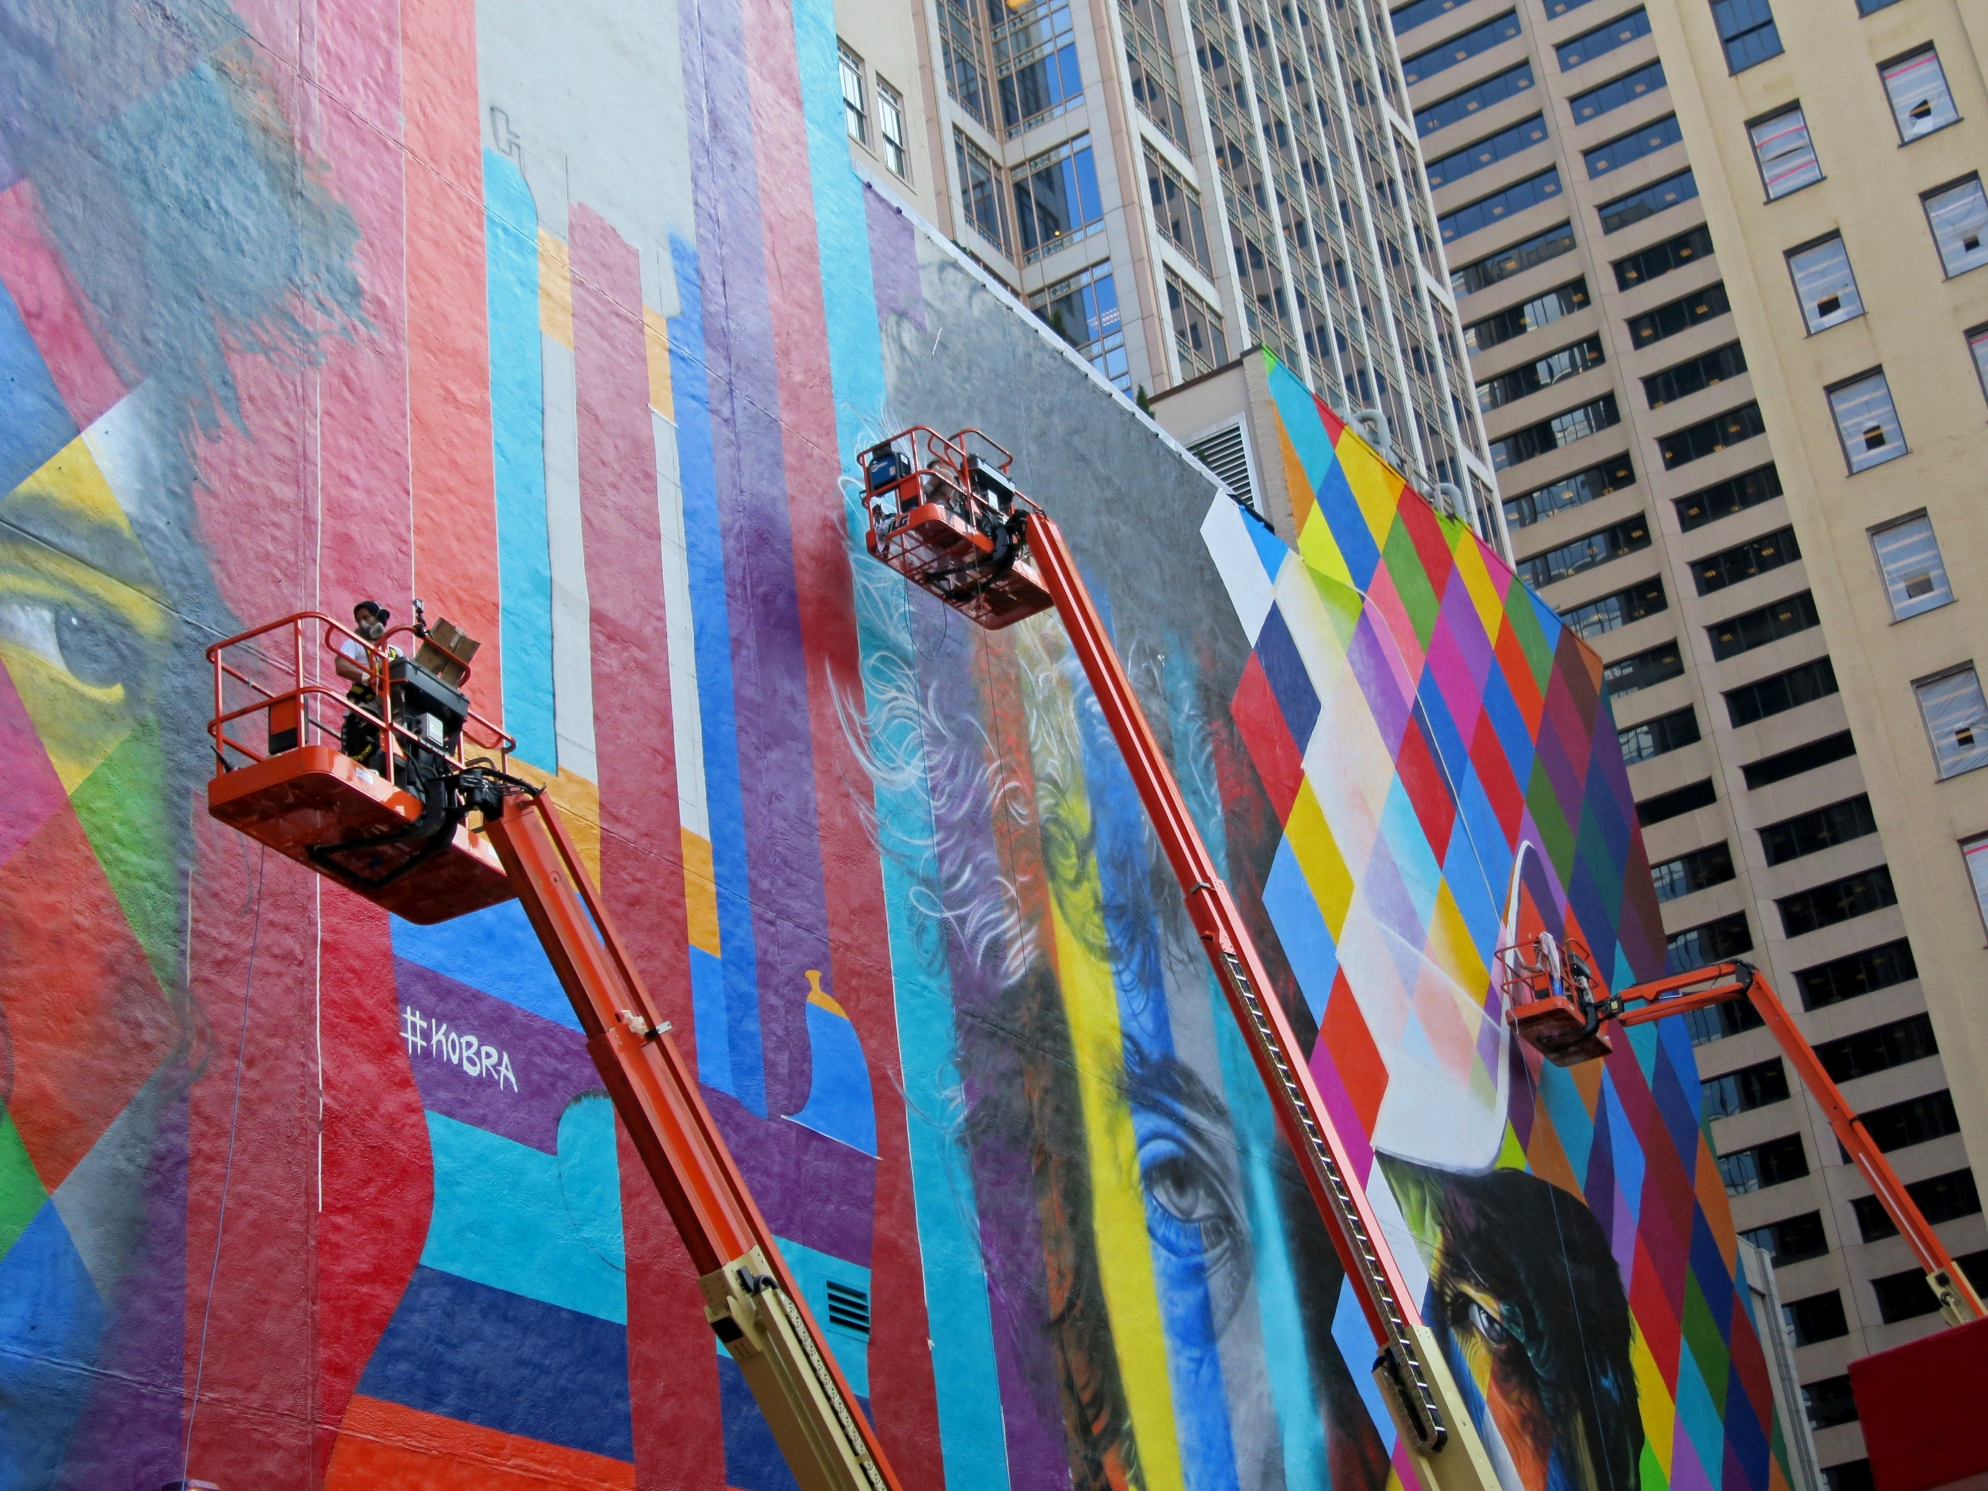 Bob Dylan mural by Eduardo Kobra, work progressing, Thursday, Sept 03 2015